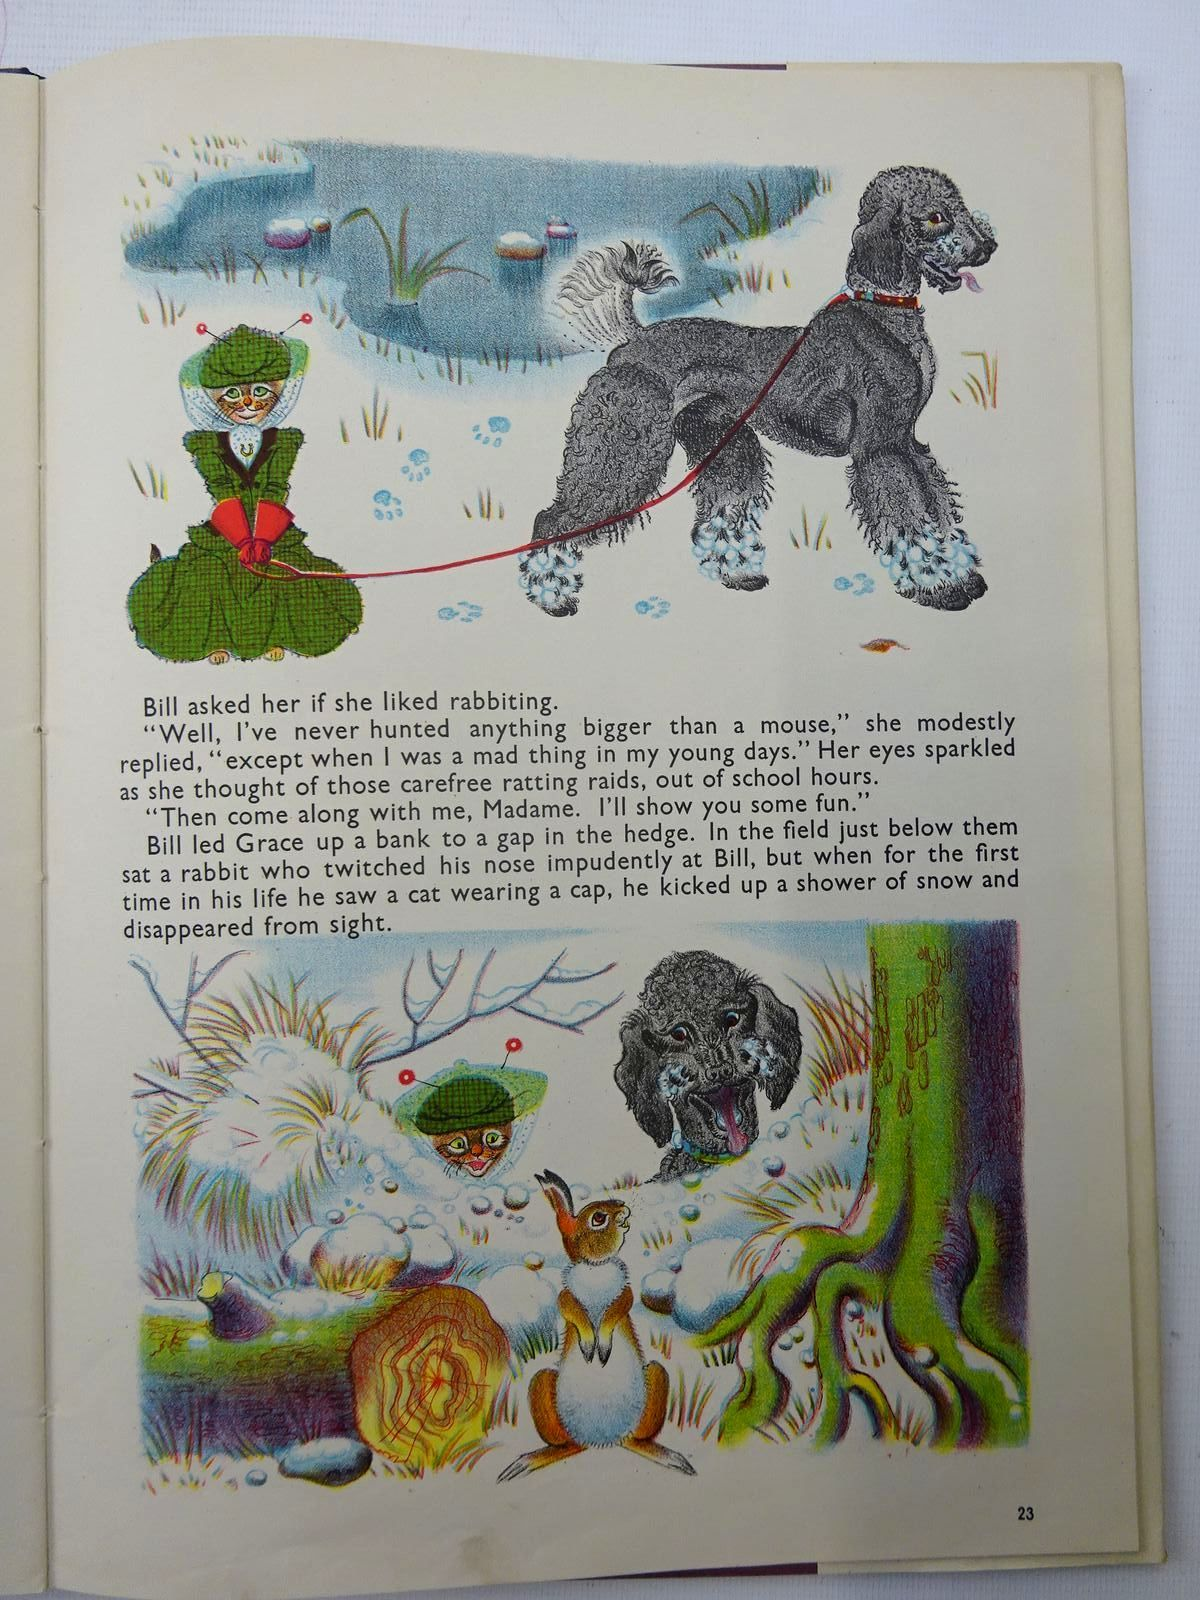 Photo of ORLANDO (THE MARMALADE CAT) KEEPS A DOG written by Hale, Kathleen illustrated by Hale, Kathleen published by Country Life (STOCK CODE: 2126005)  for sale by Stella & Rose's Books